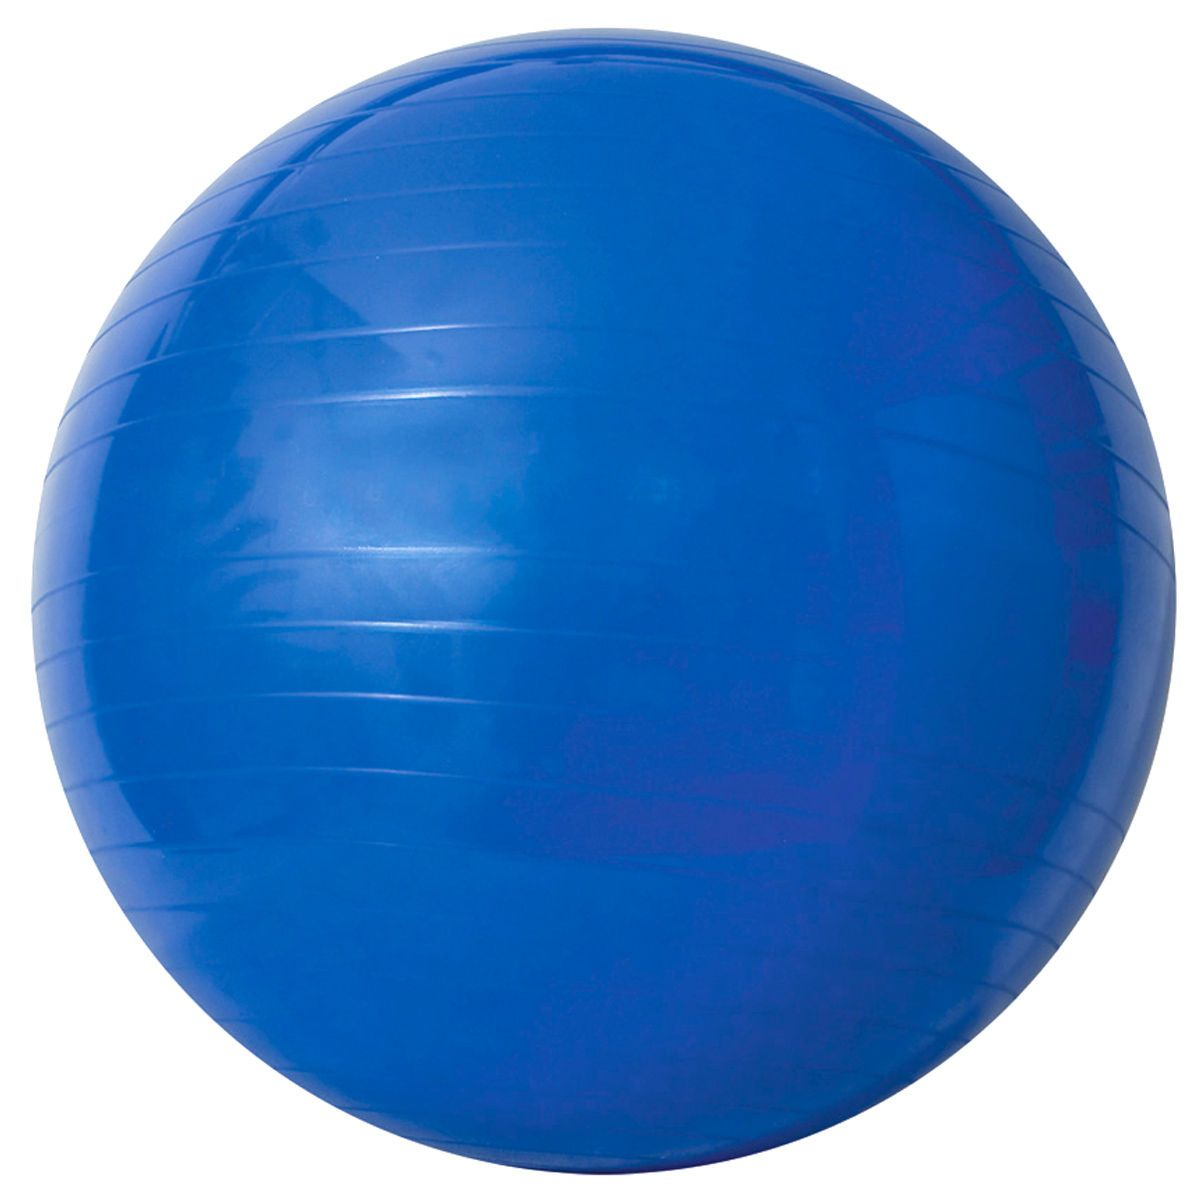 Bola de Massagem Gym Ball com Bomba de Ar até 300Kg  - Acte Sports